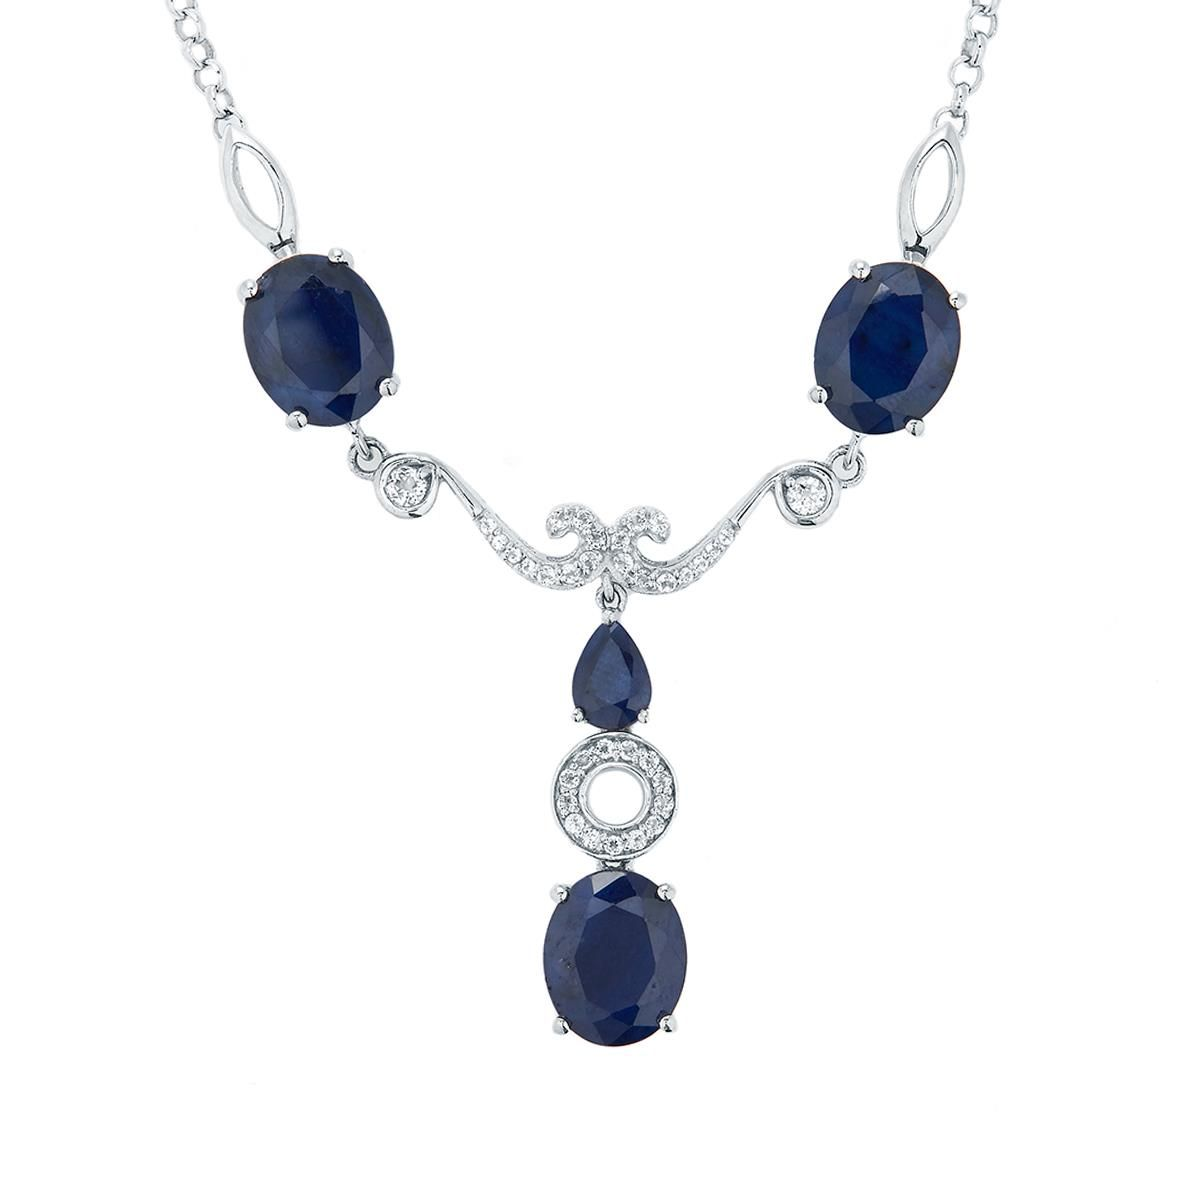 An engaging Necklace from the Annabella collection, made of Sterling Silver featuring 14.73cts of amazing Madagascan Blue Sapphire and White Topaz.